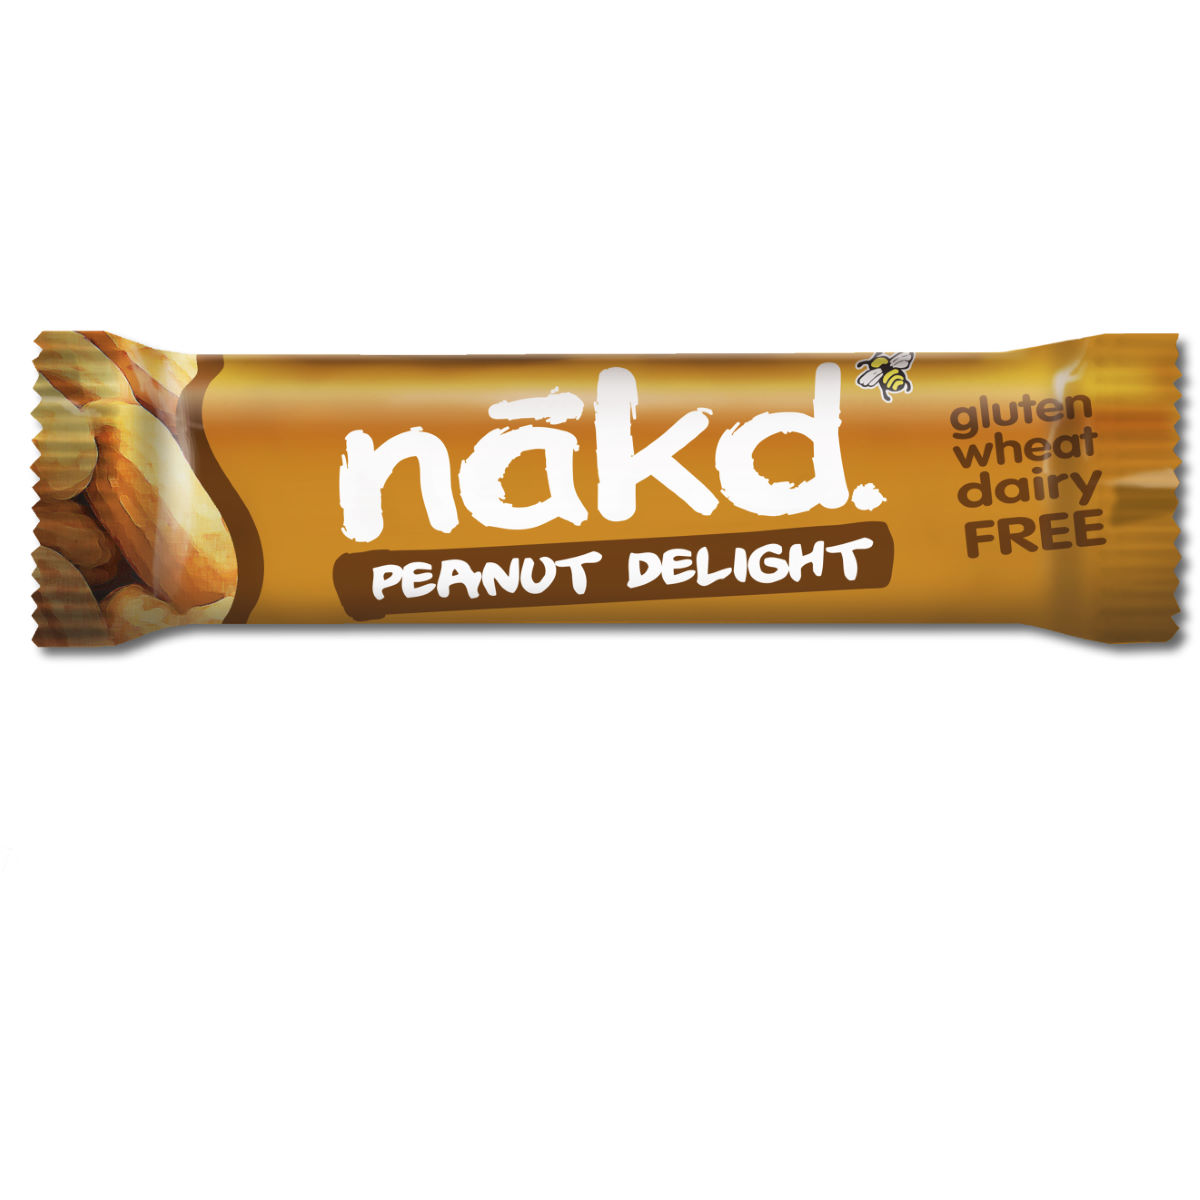 nakd. Bar 4 x 35g Multi-Pack - Barritas